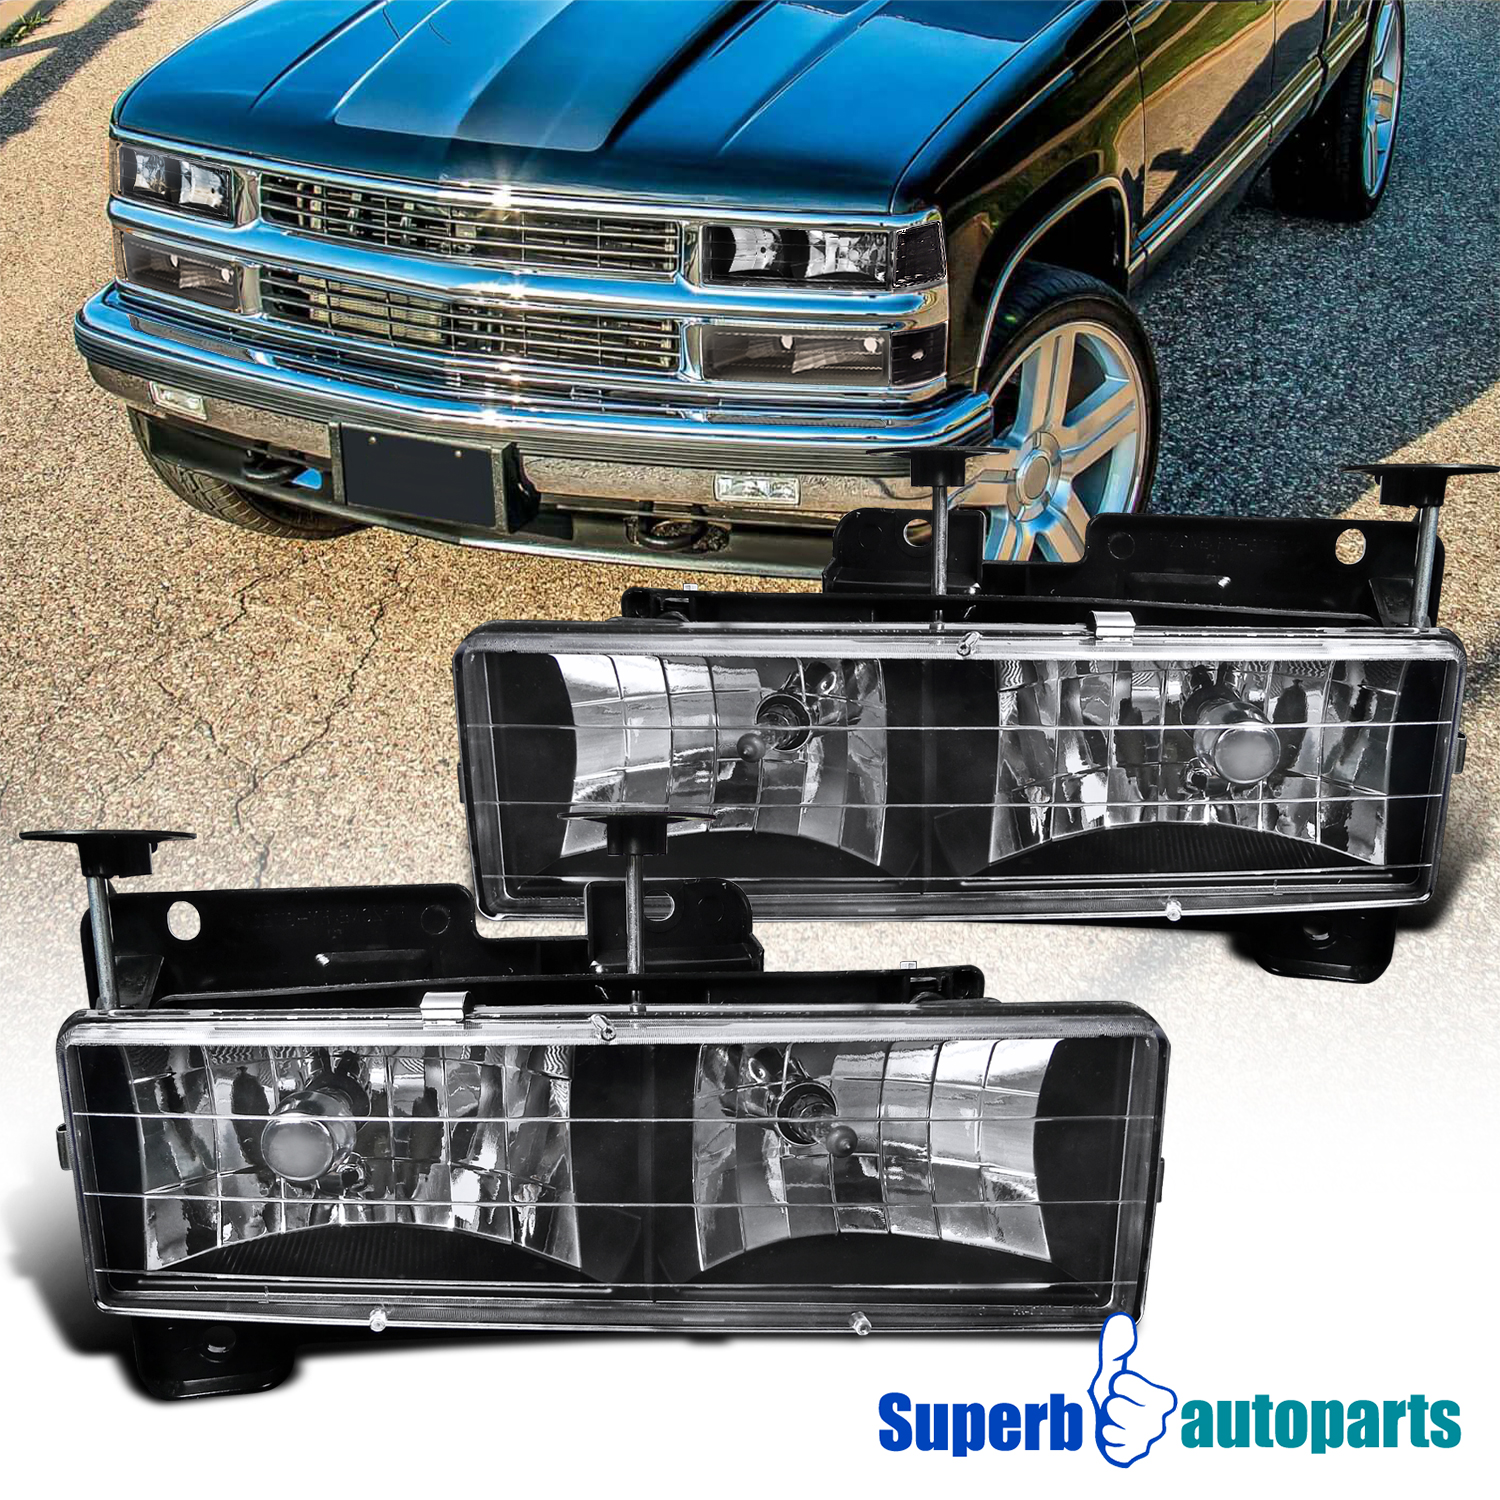 Details about For 88-98 Chevy GMC C10 CK 1500/2500/3500 94-99 Suburban  Headlights Lamps Black